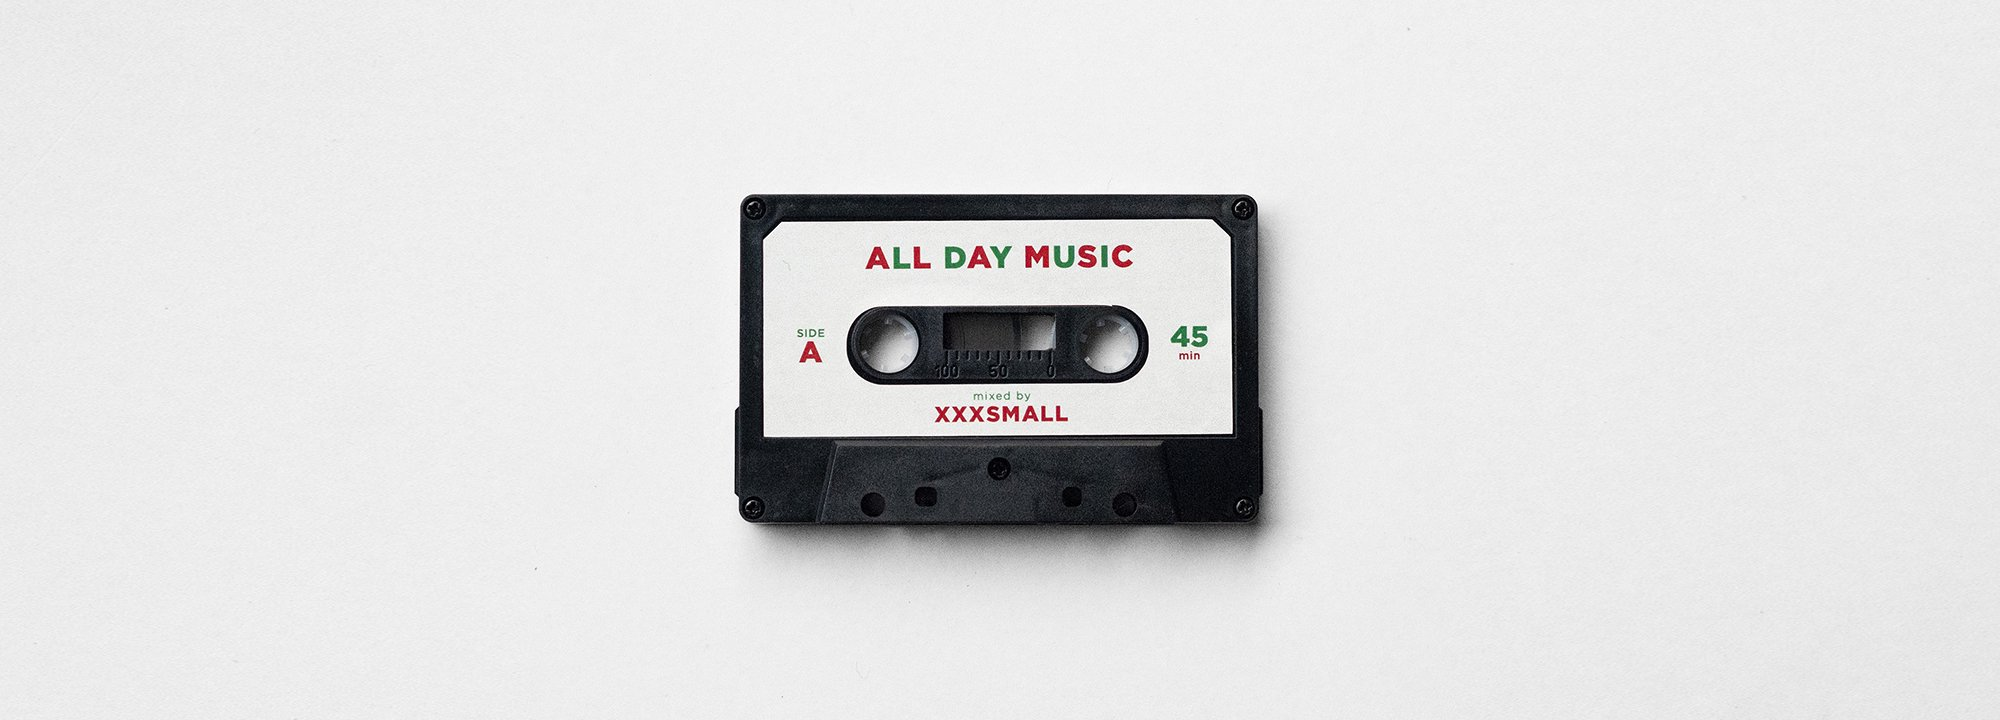 """ALL DAY MUSIC #10"" Mixed by XXXSMALL"